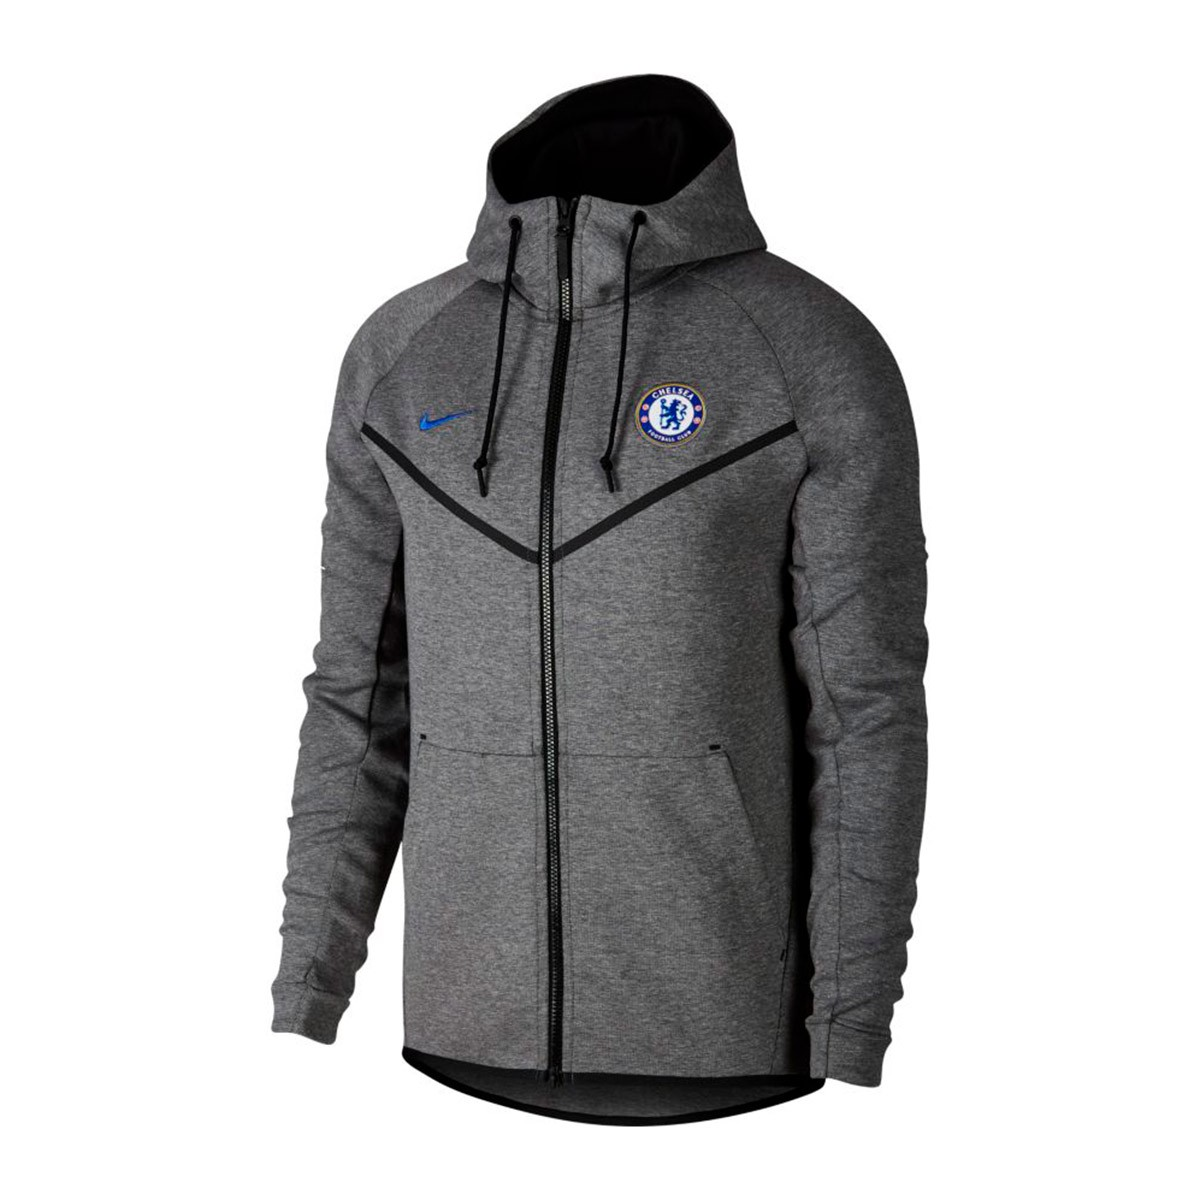 00e33176b Sweatshirt Nike Chelsea FC NSW 2017-2018 Carbon heather-Rush Blue ...